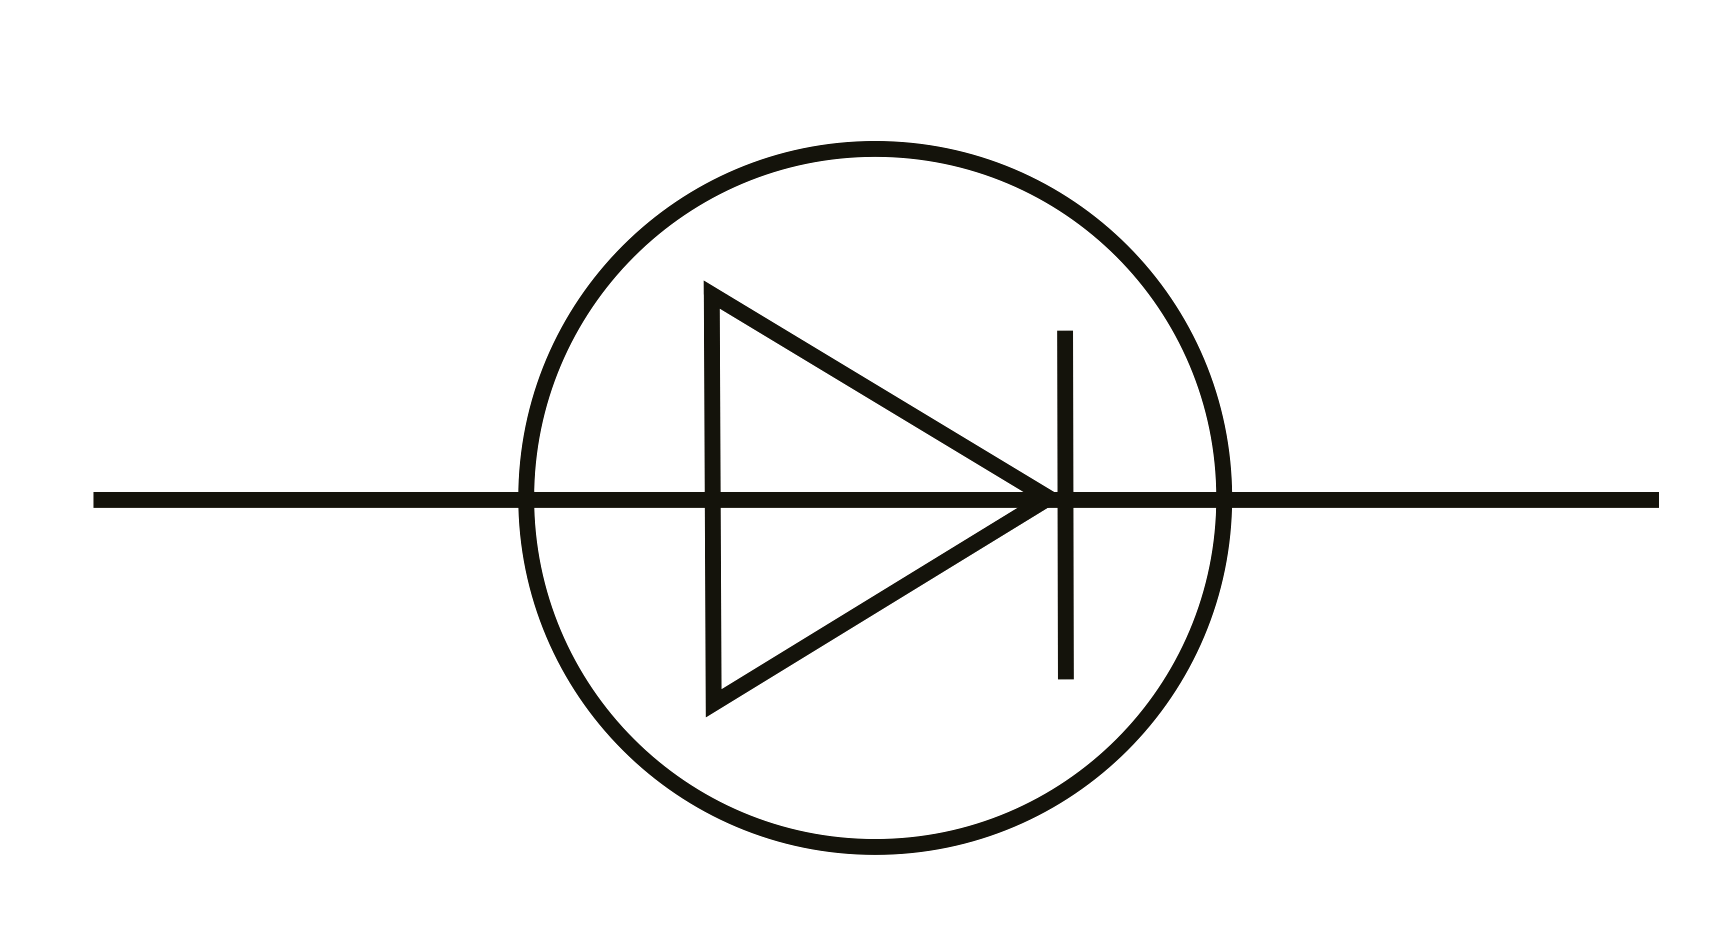 Component Circuit Symbol For A Cell Electrical Schematic